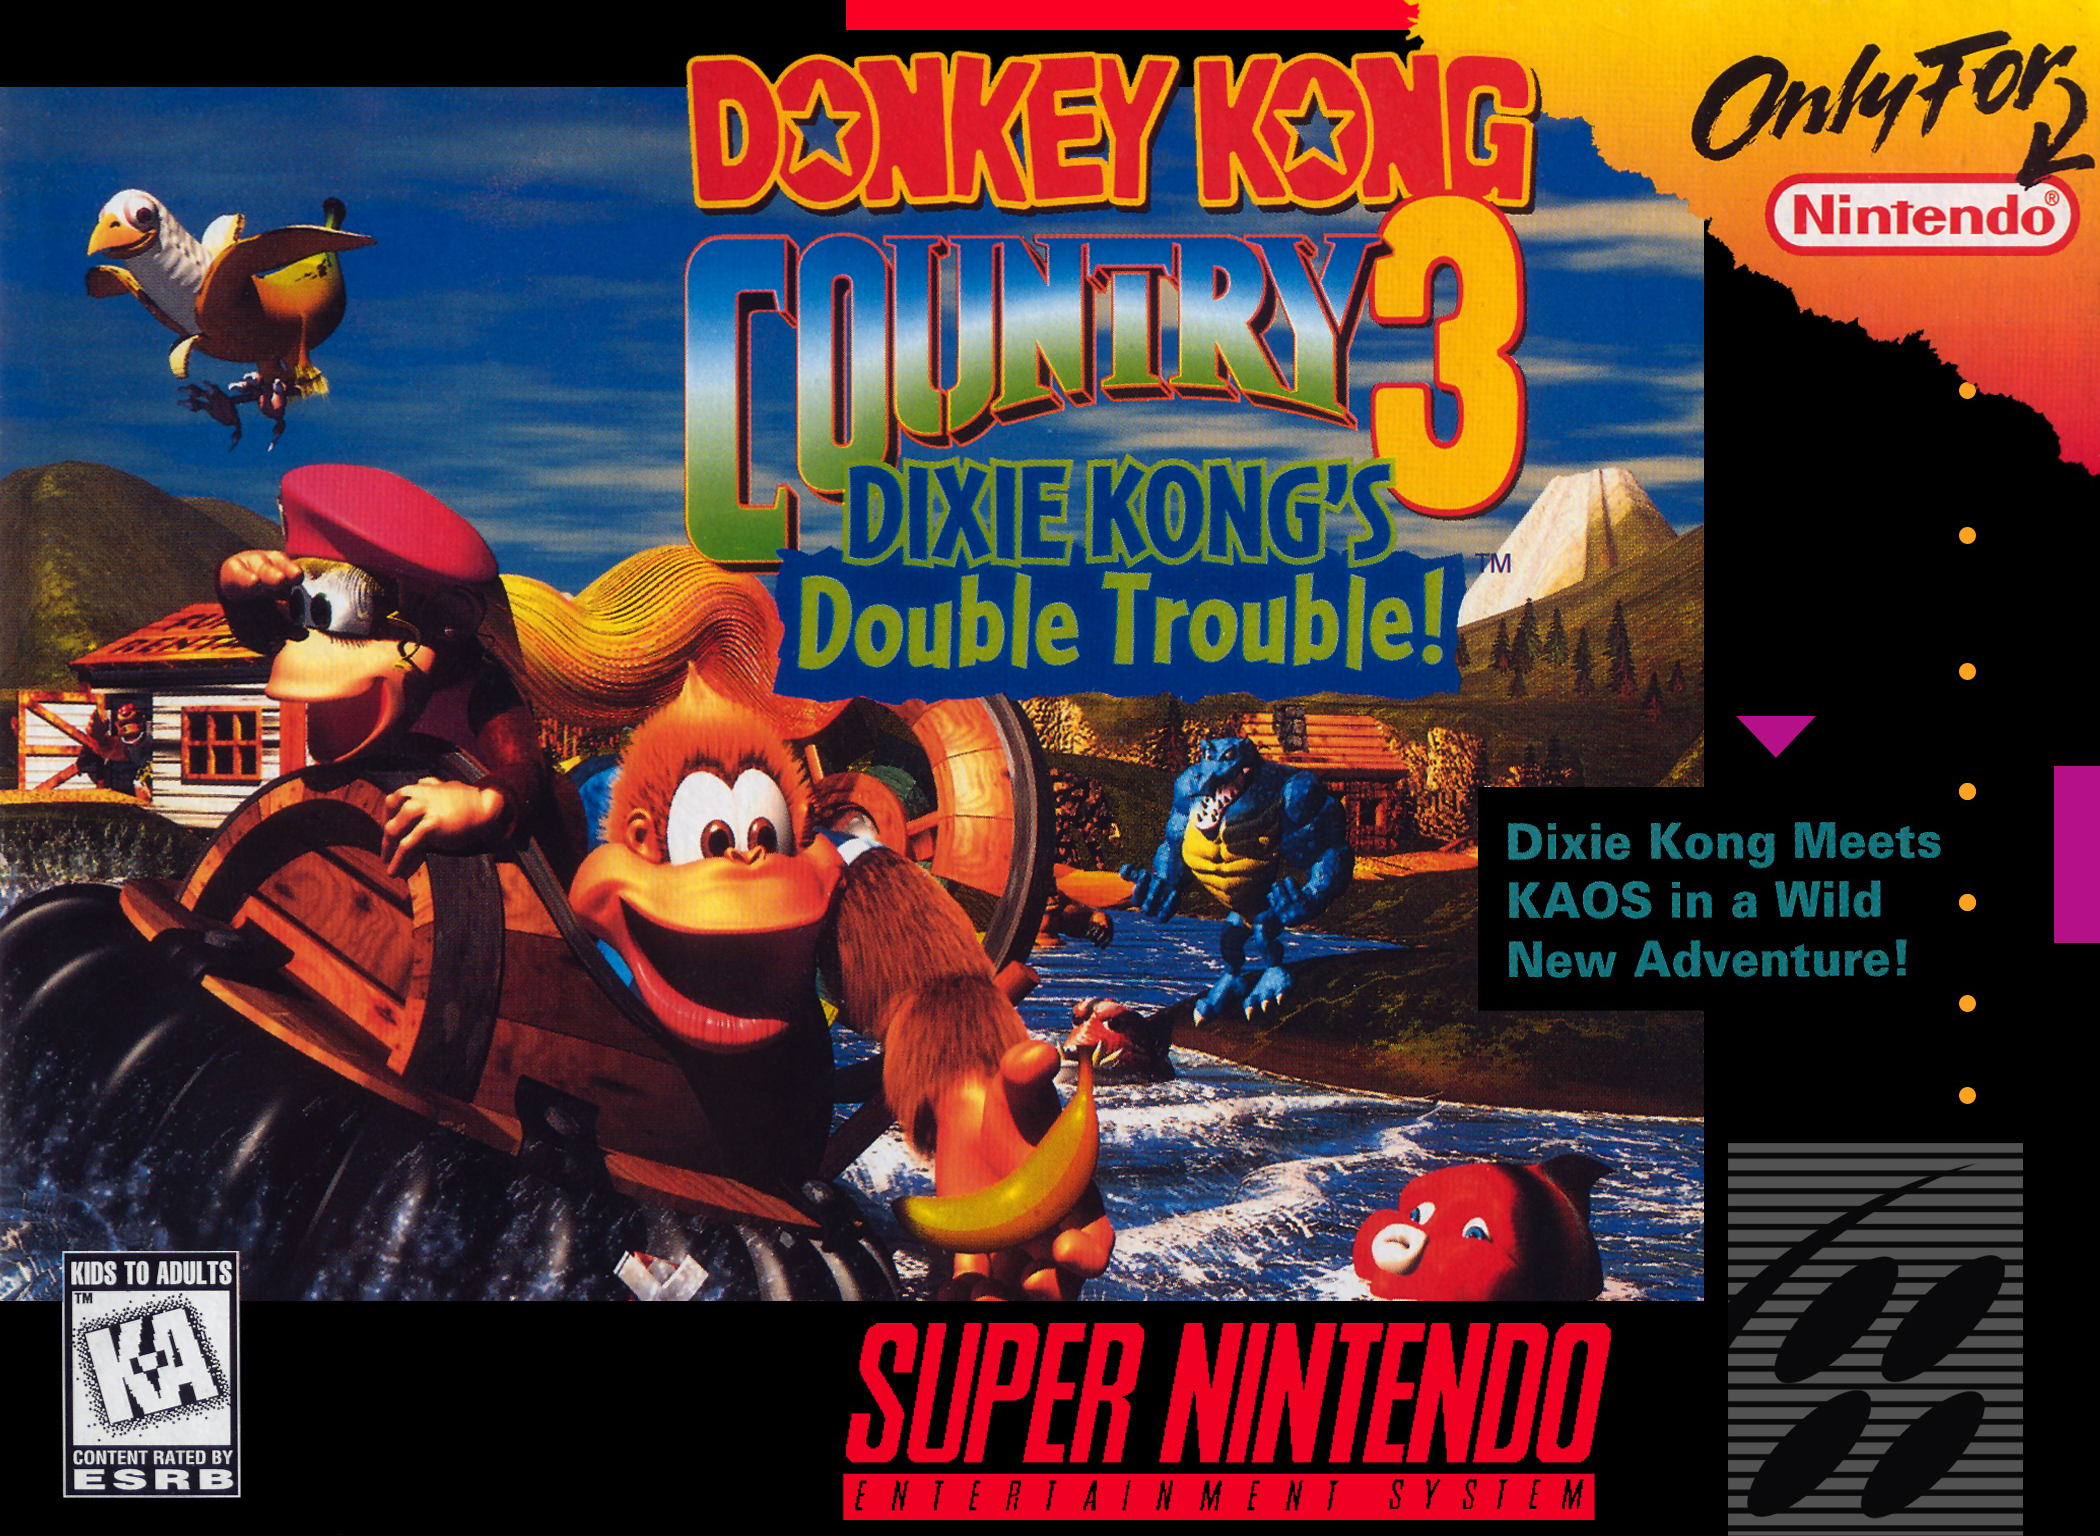 Donkey Kong Country 3: Dixie Kong's Double Trouble Nintendo Super NES For Super